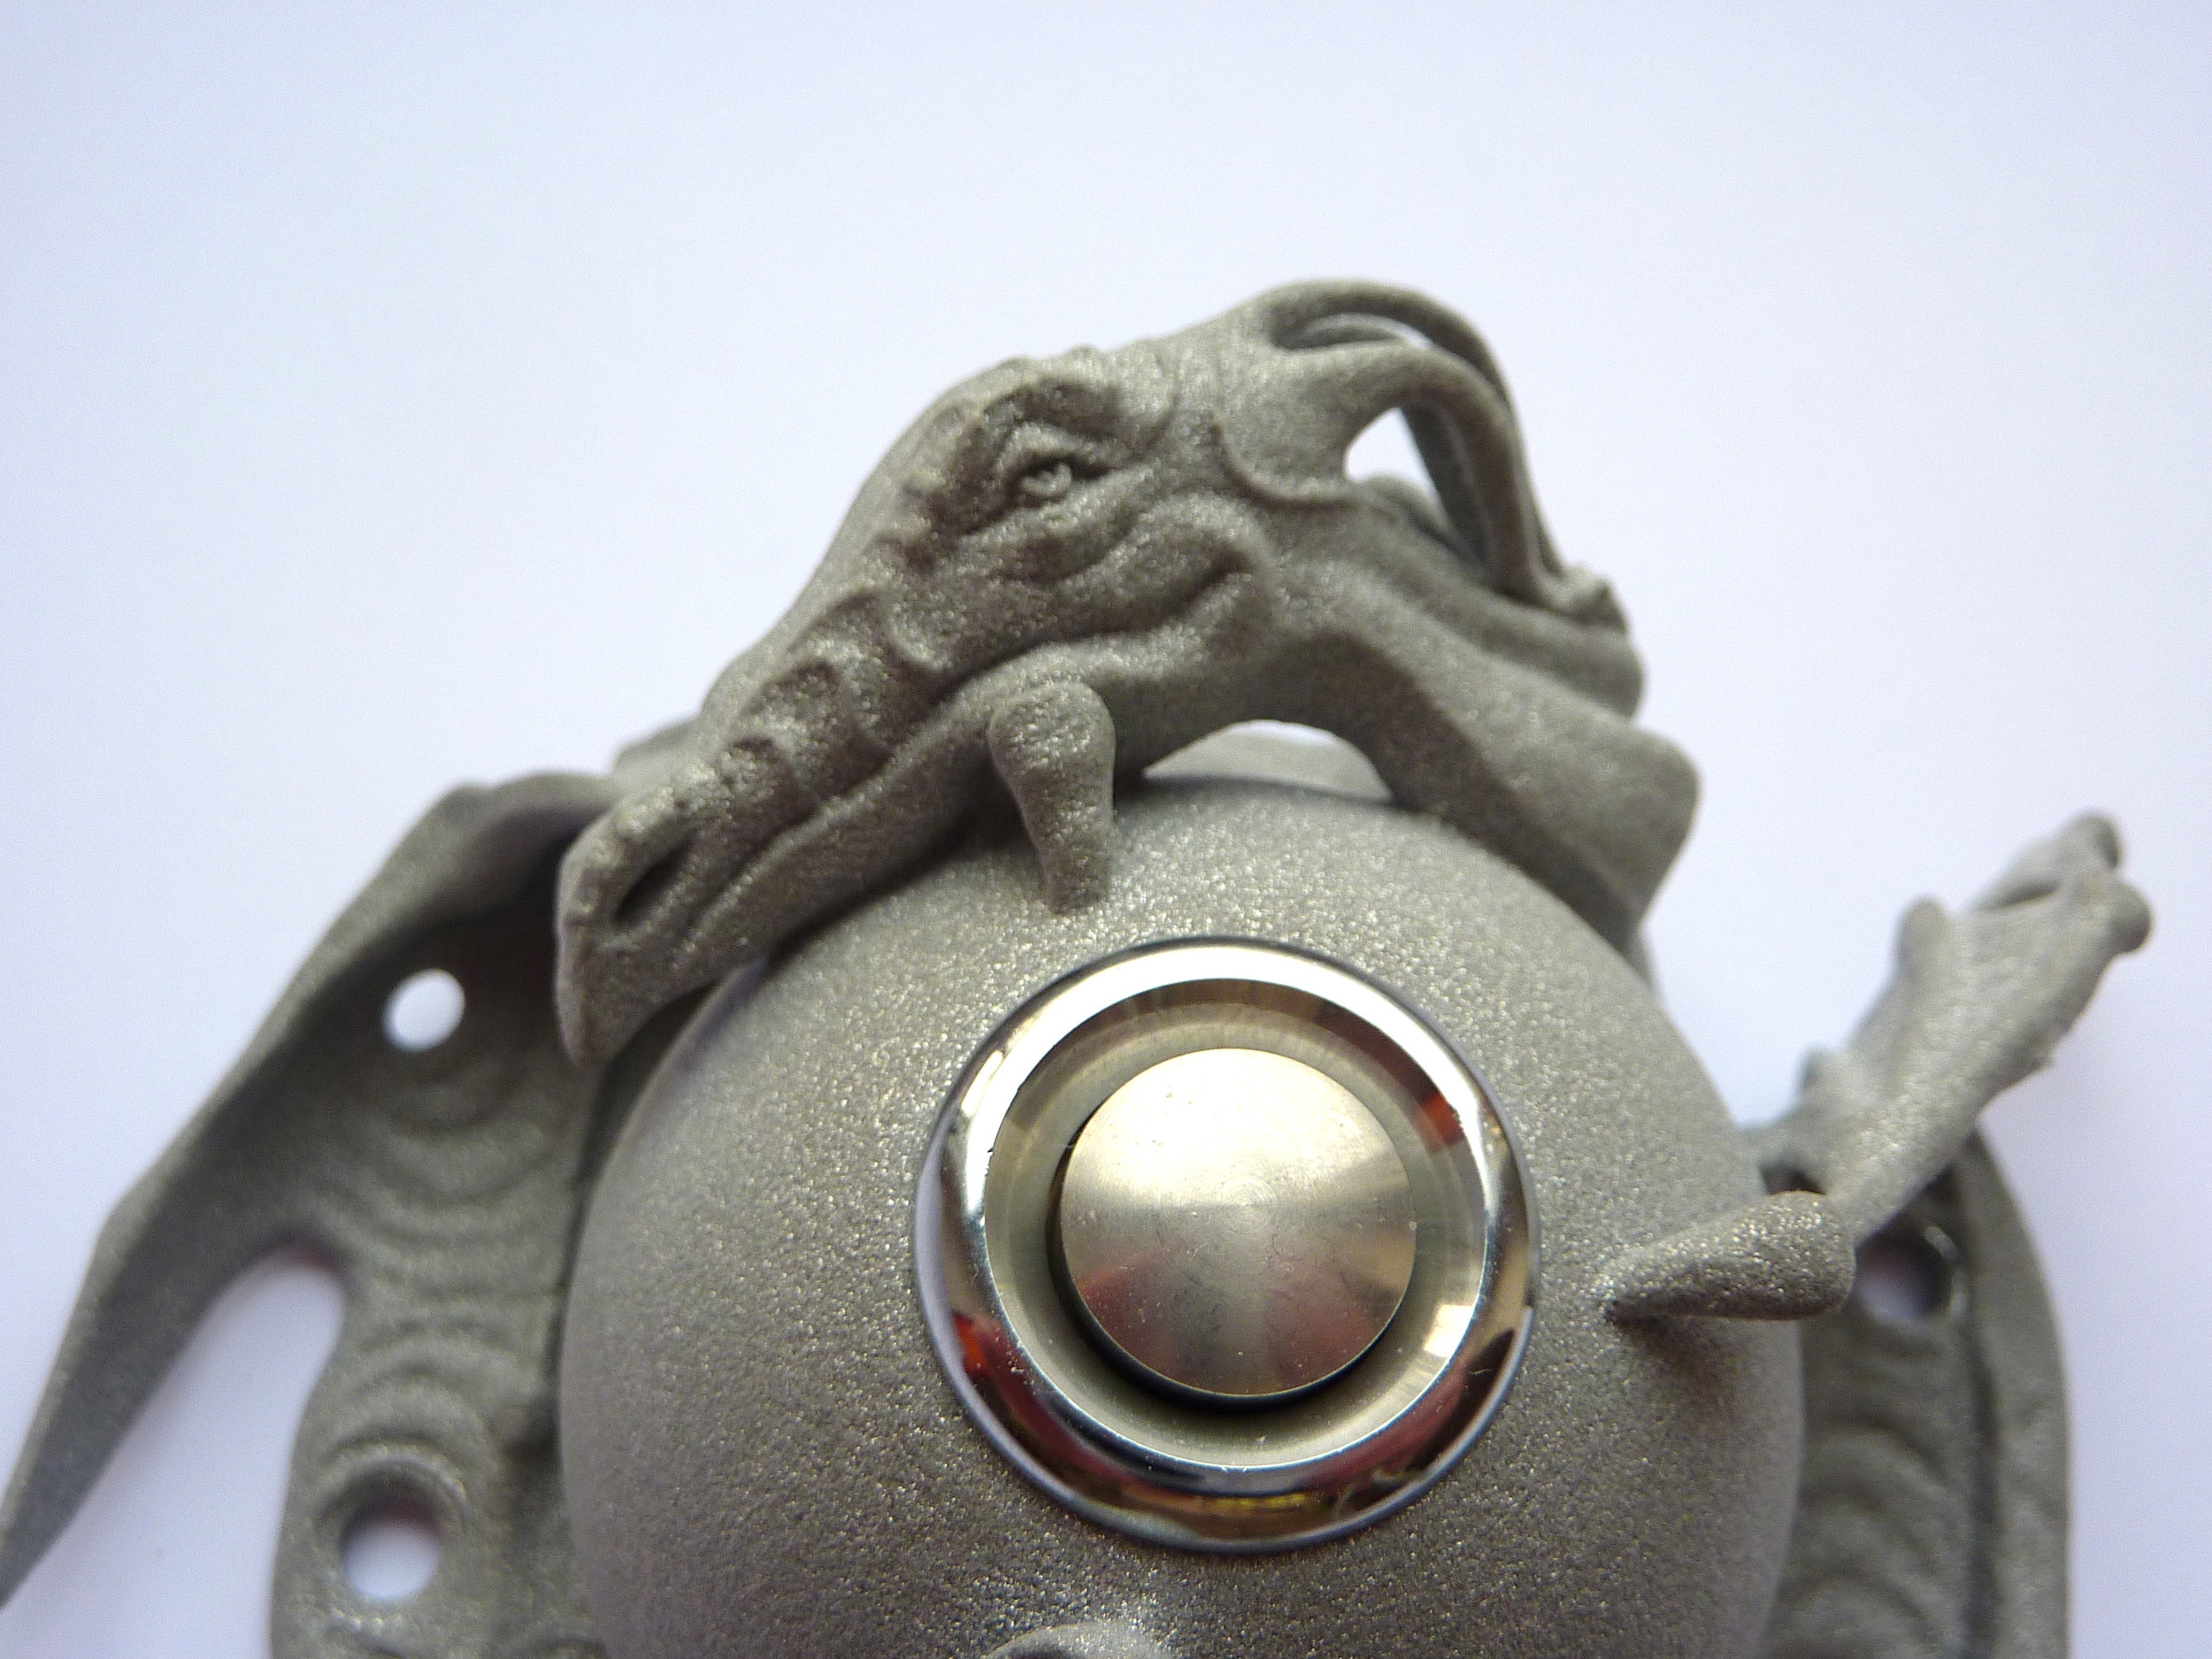 The 3D printed Guardian at the Gate doorbell cover